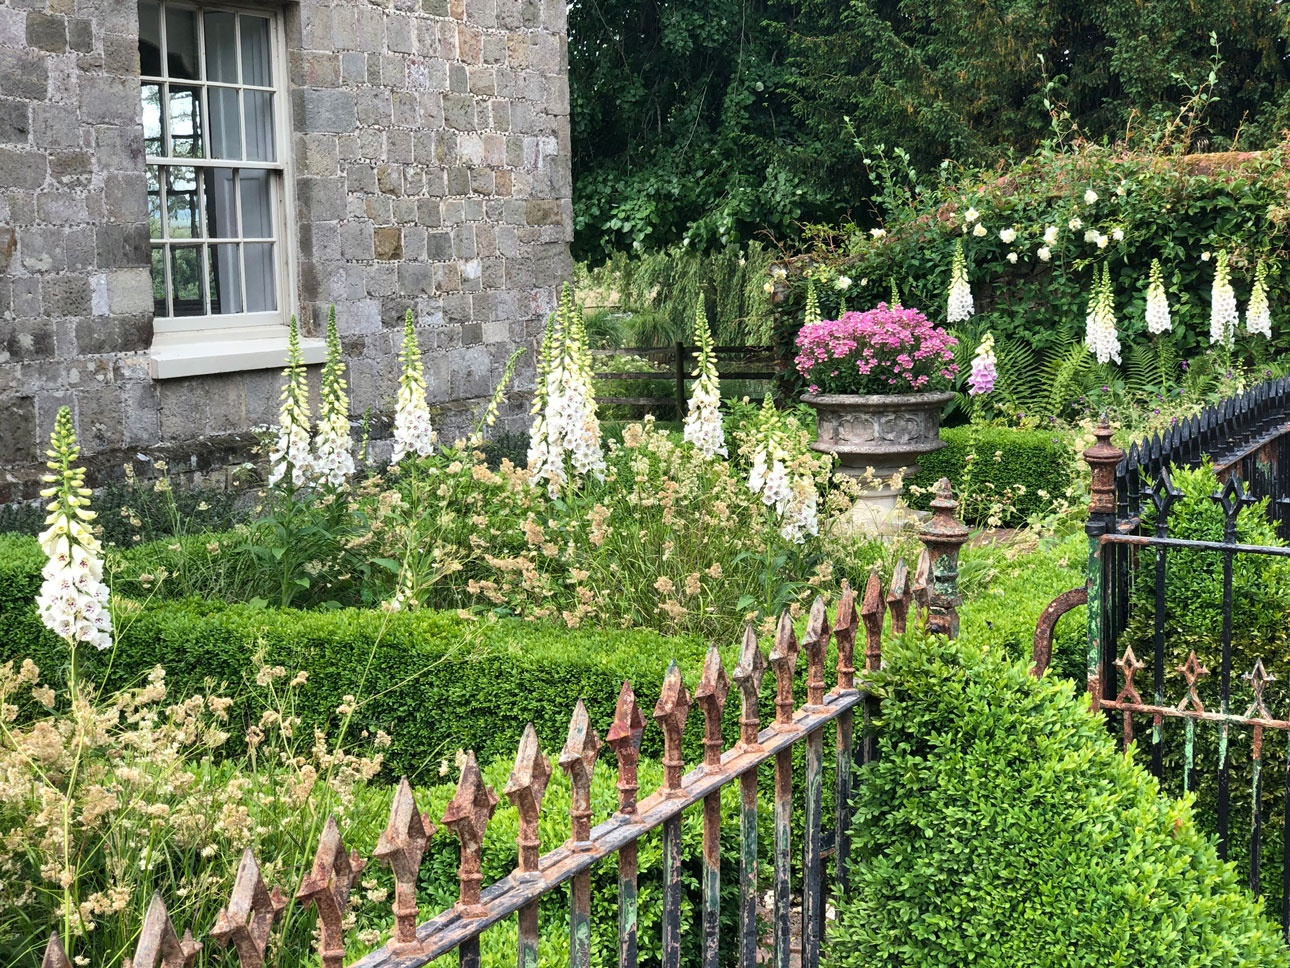 Elegant front garden with box parterre hedging and white foxgloves enclosed behind restored wrought iron railings